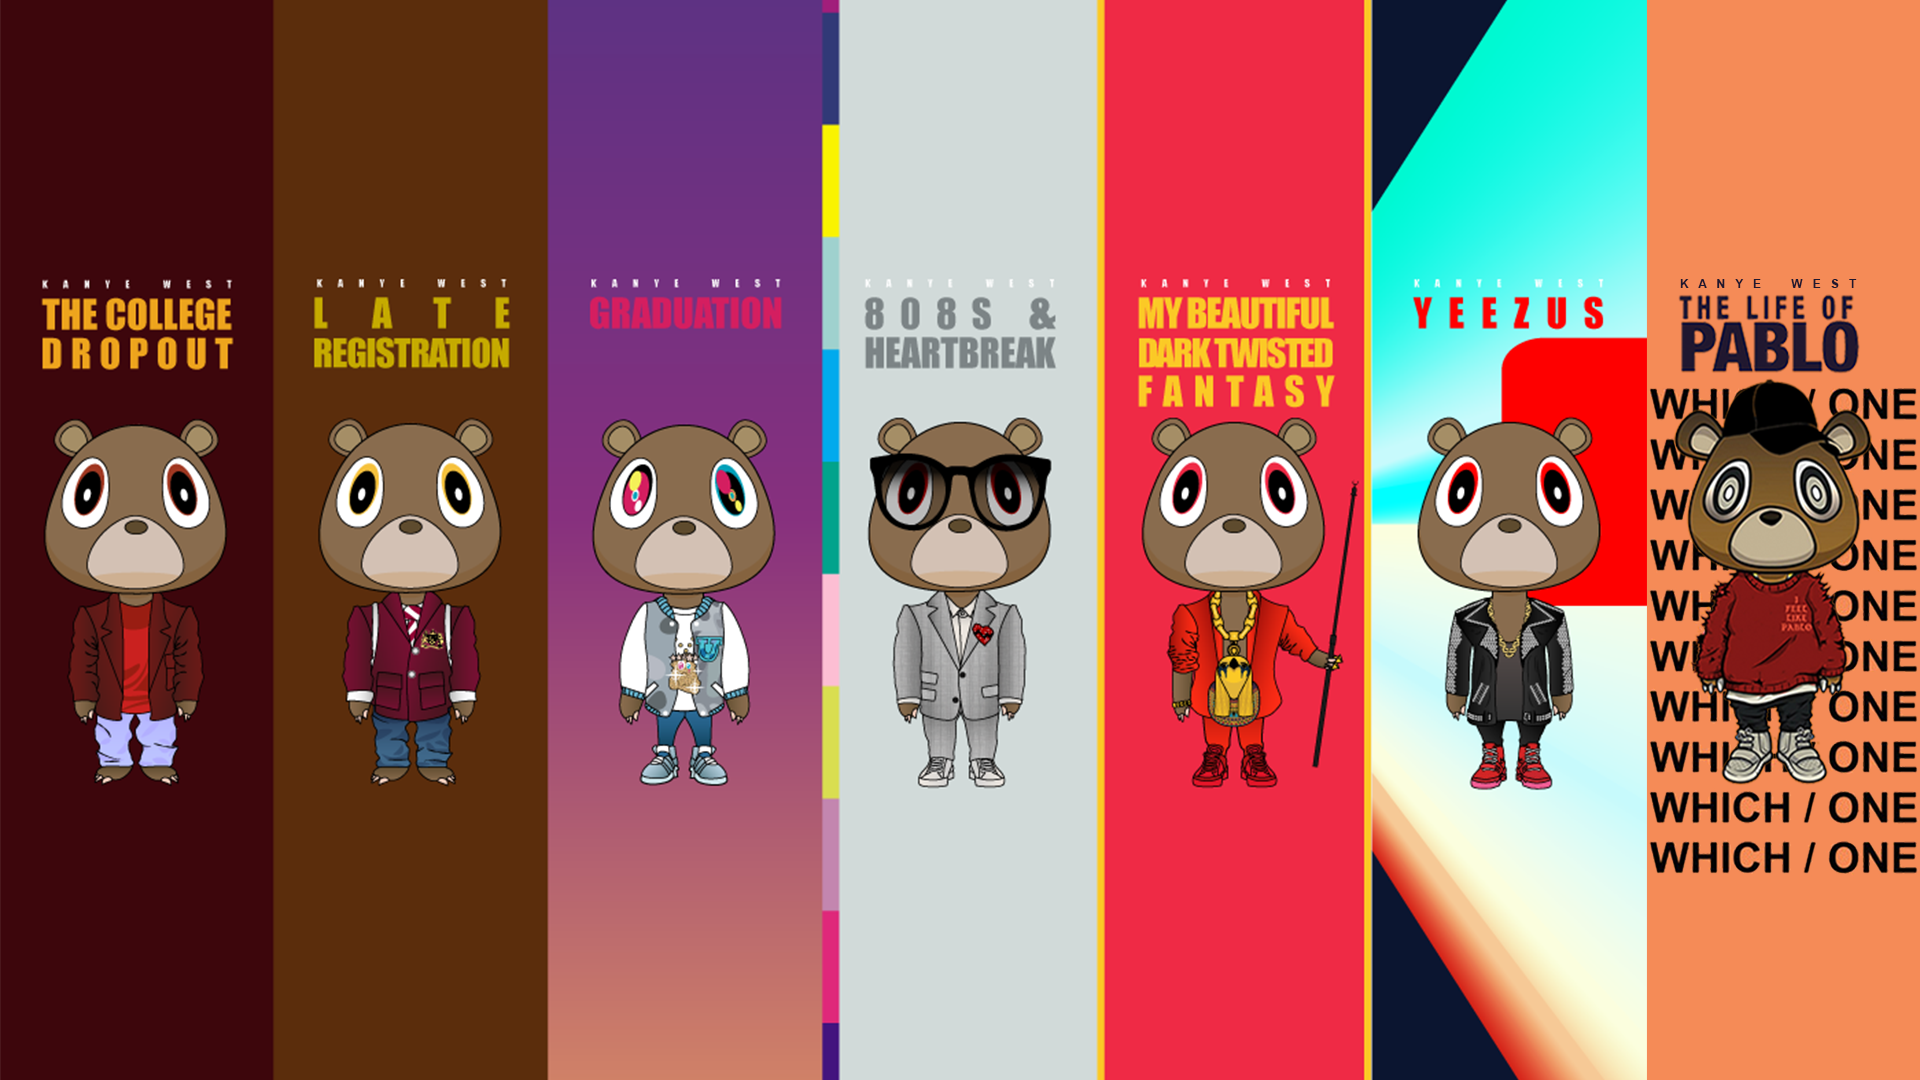 Kanye West Pablo Wallpapers Background On High Resolution Wallpaper In 2020 Kanye West Kanye West Album Cover Kanye West Pablo